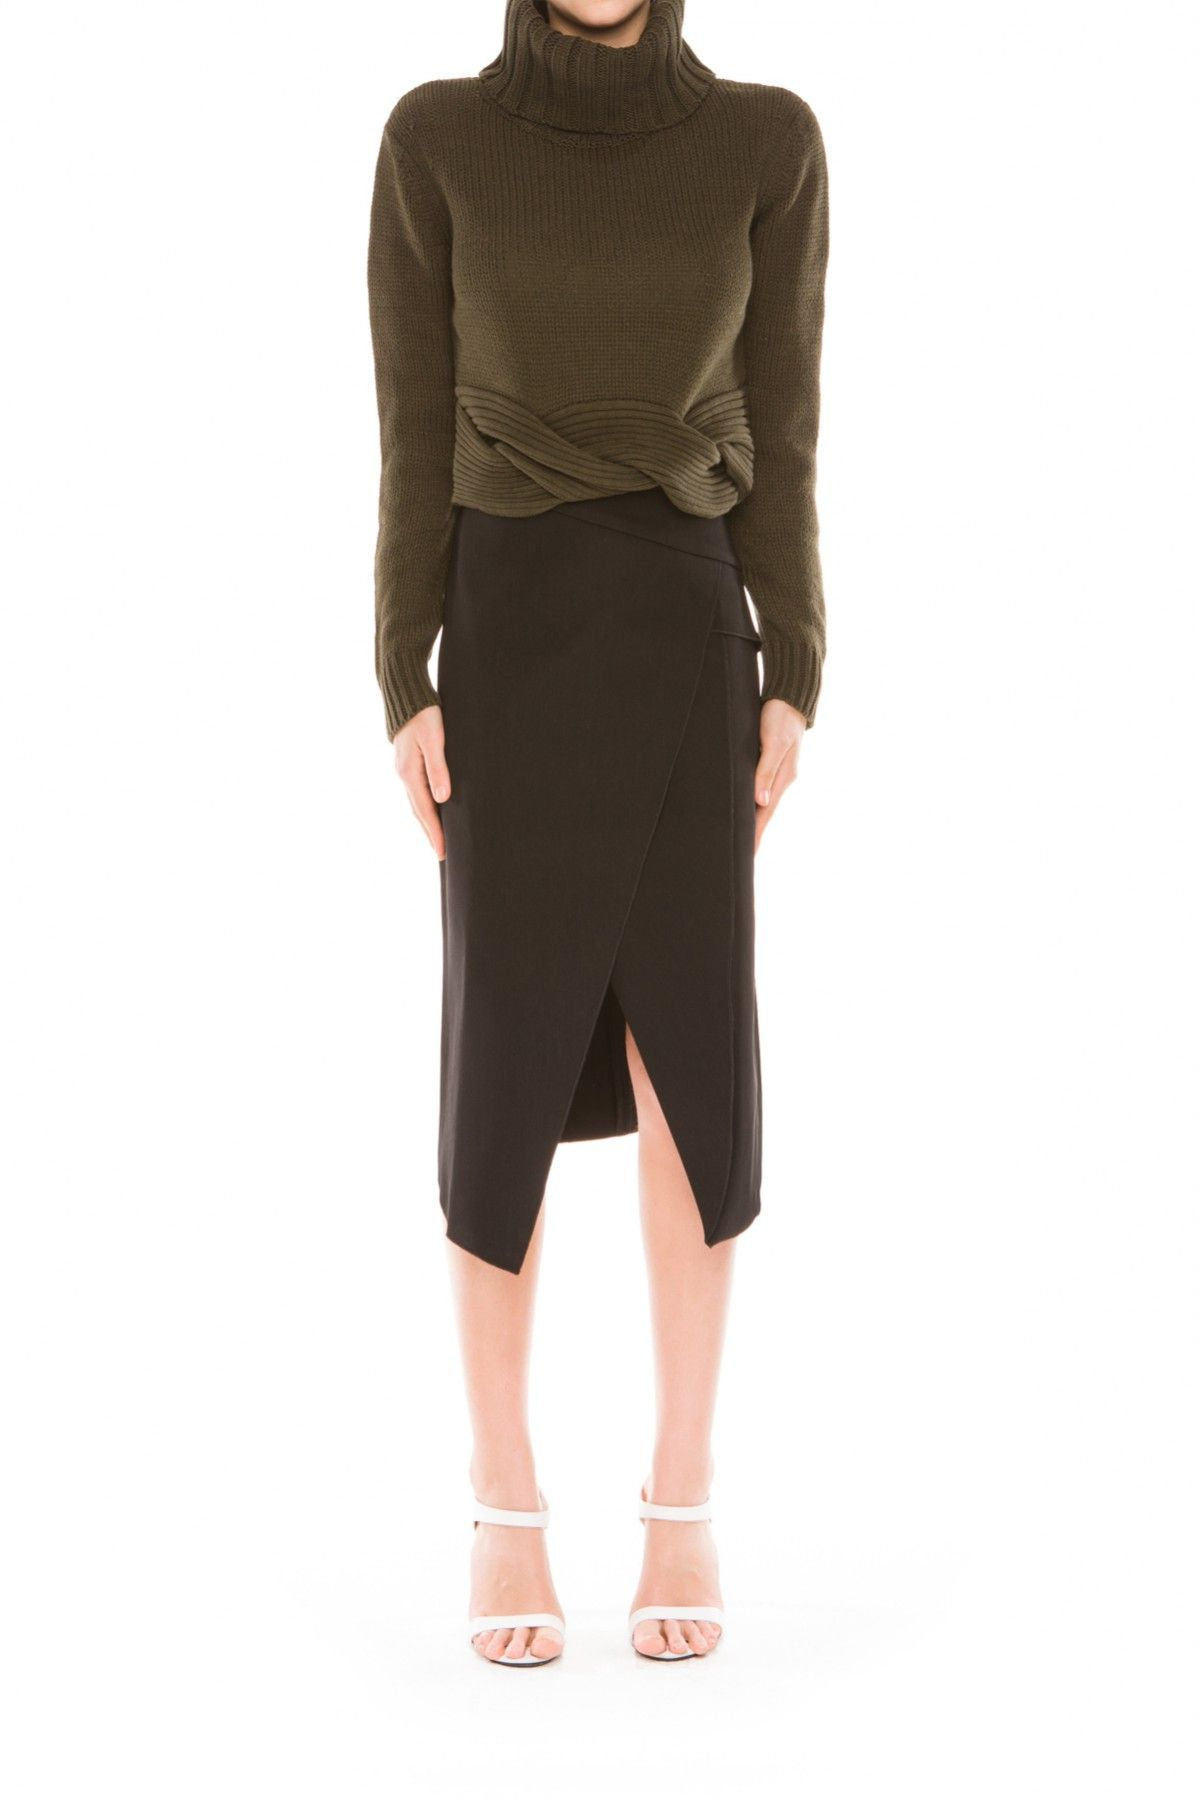 C/MEO Collective TWIST IT UP JUMPER KHAKI - BNKR